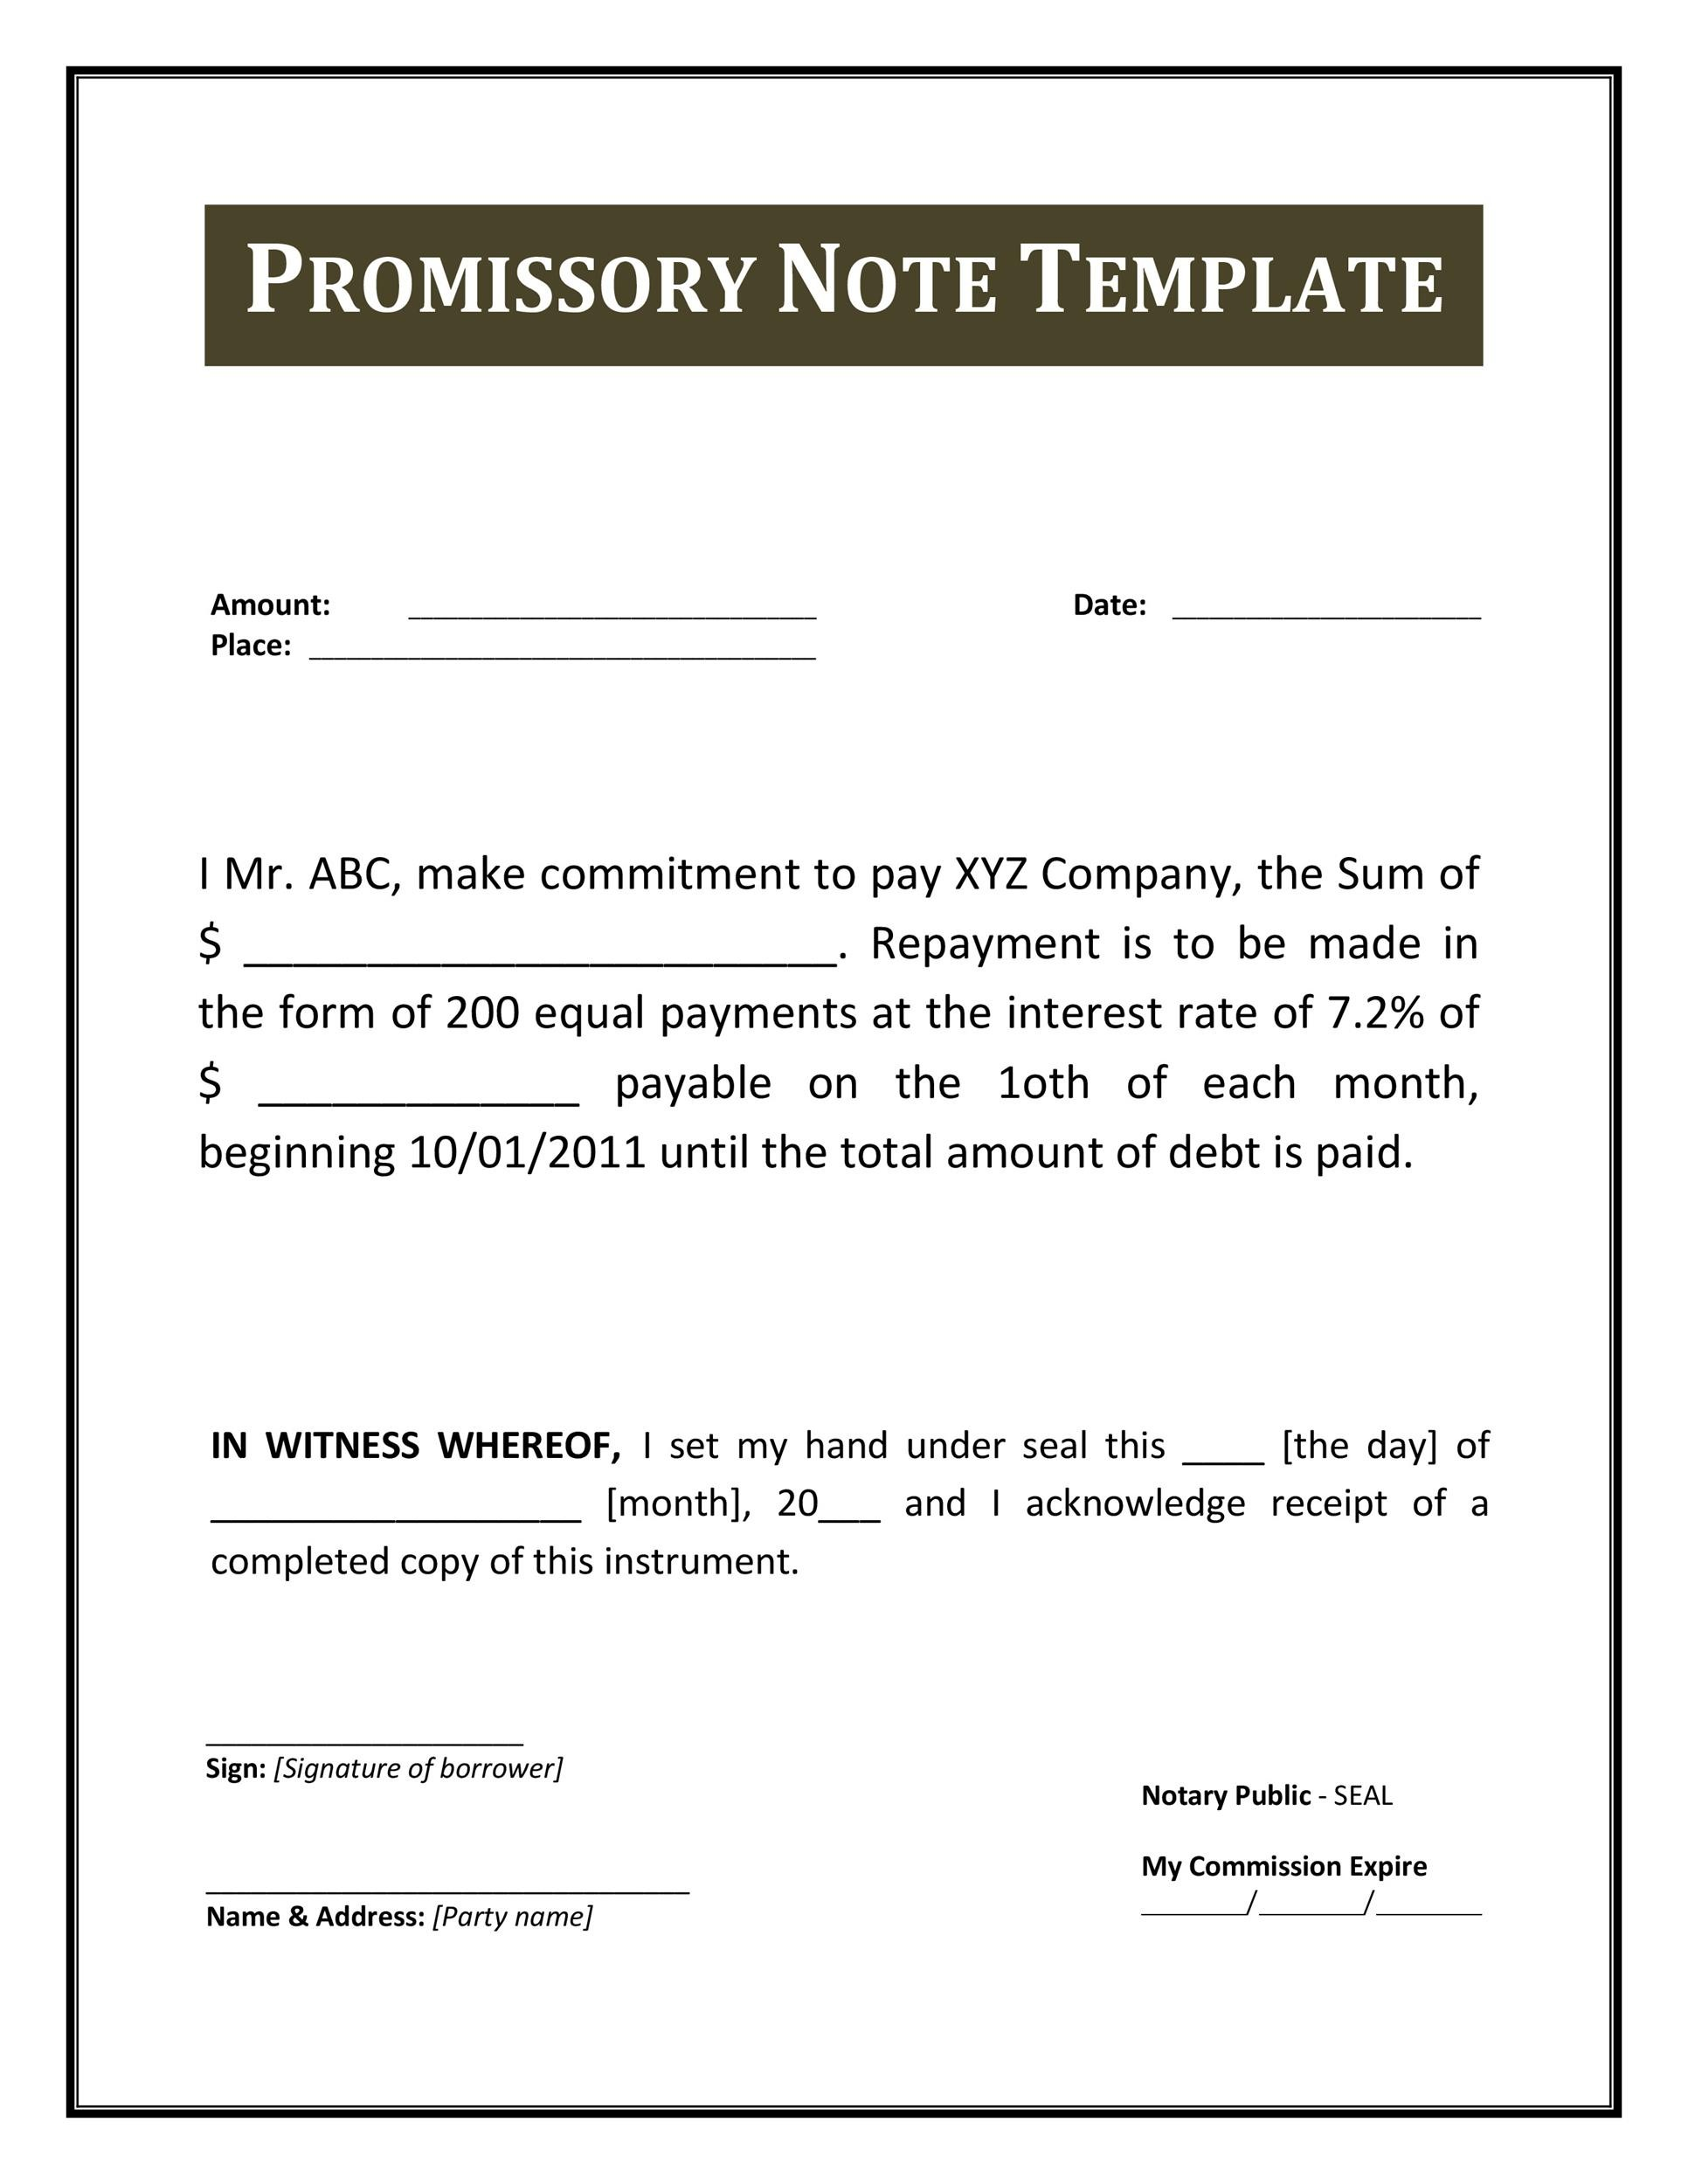 45 free promissory note templates forms word pdf With promissory letter template